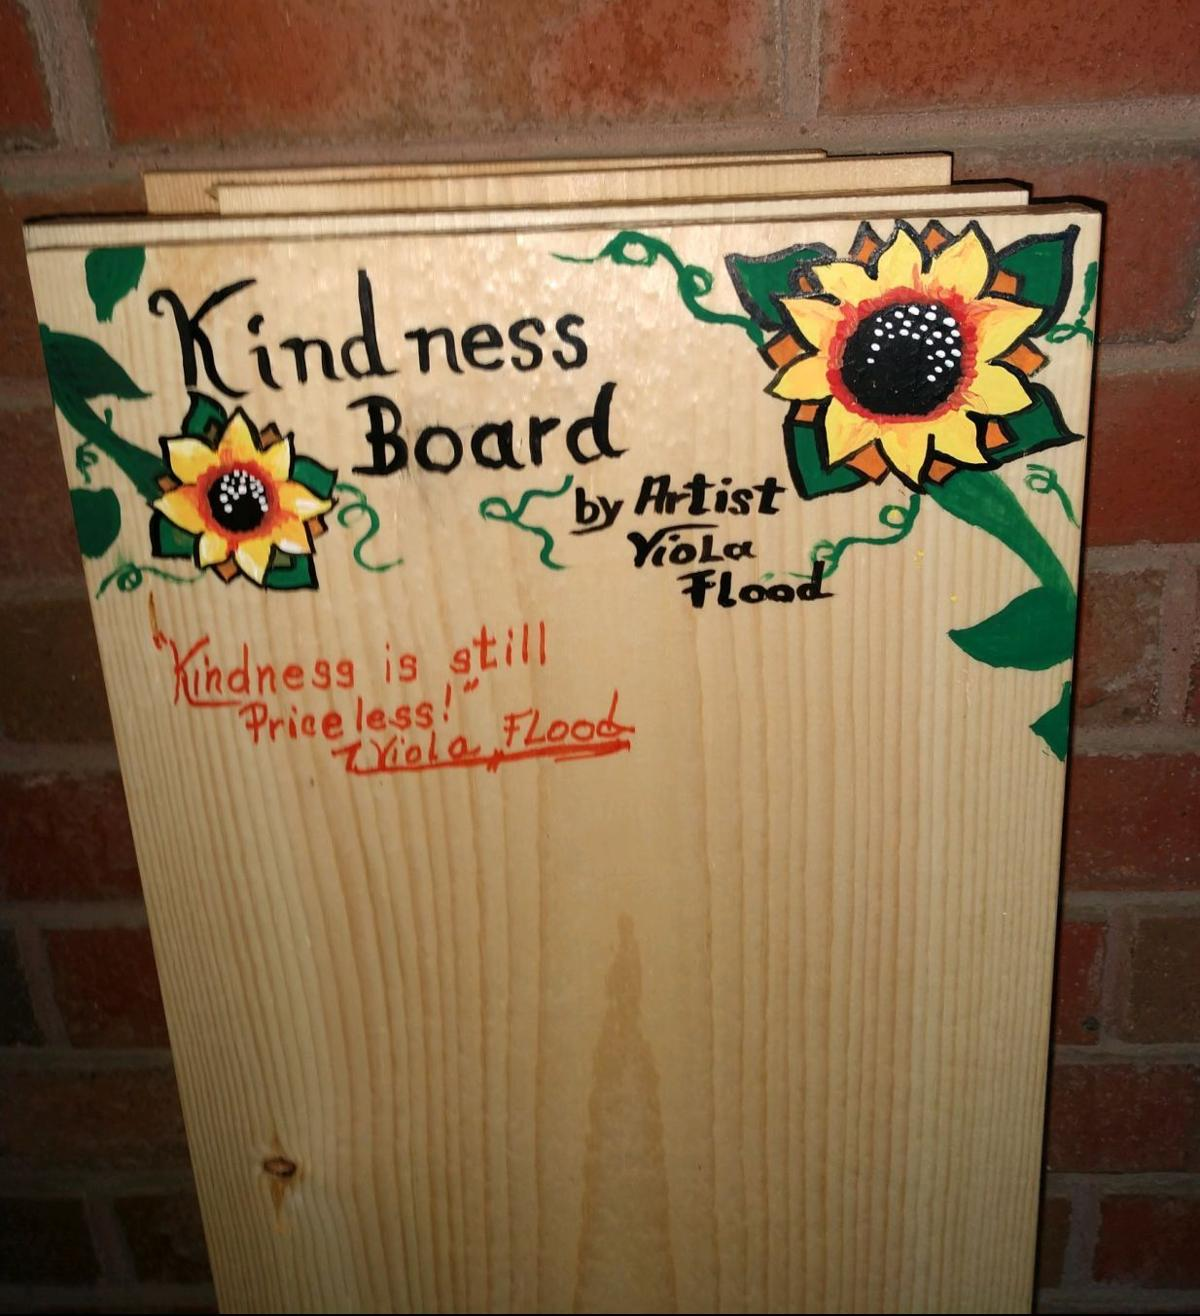 Kindness board